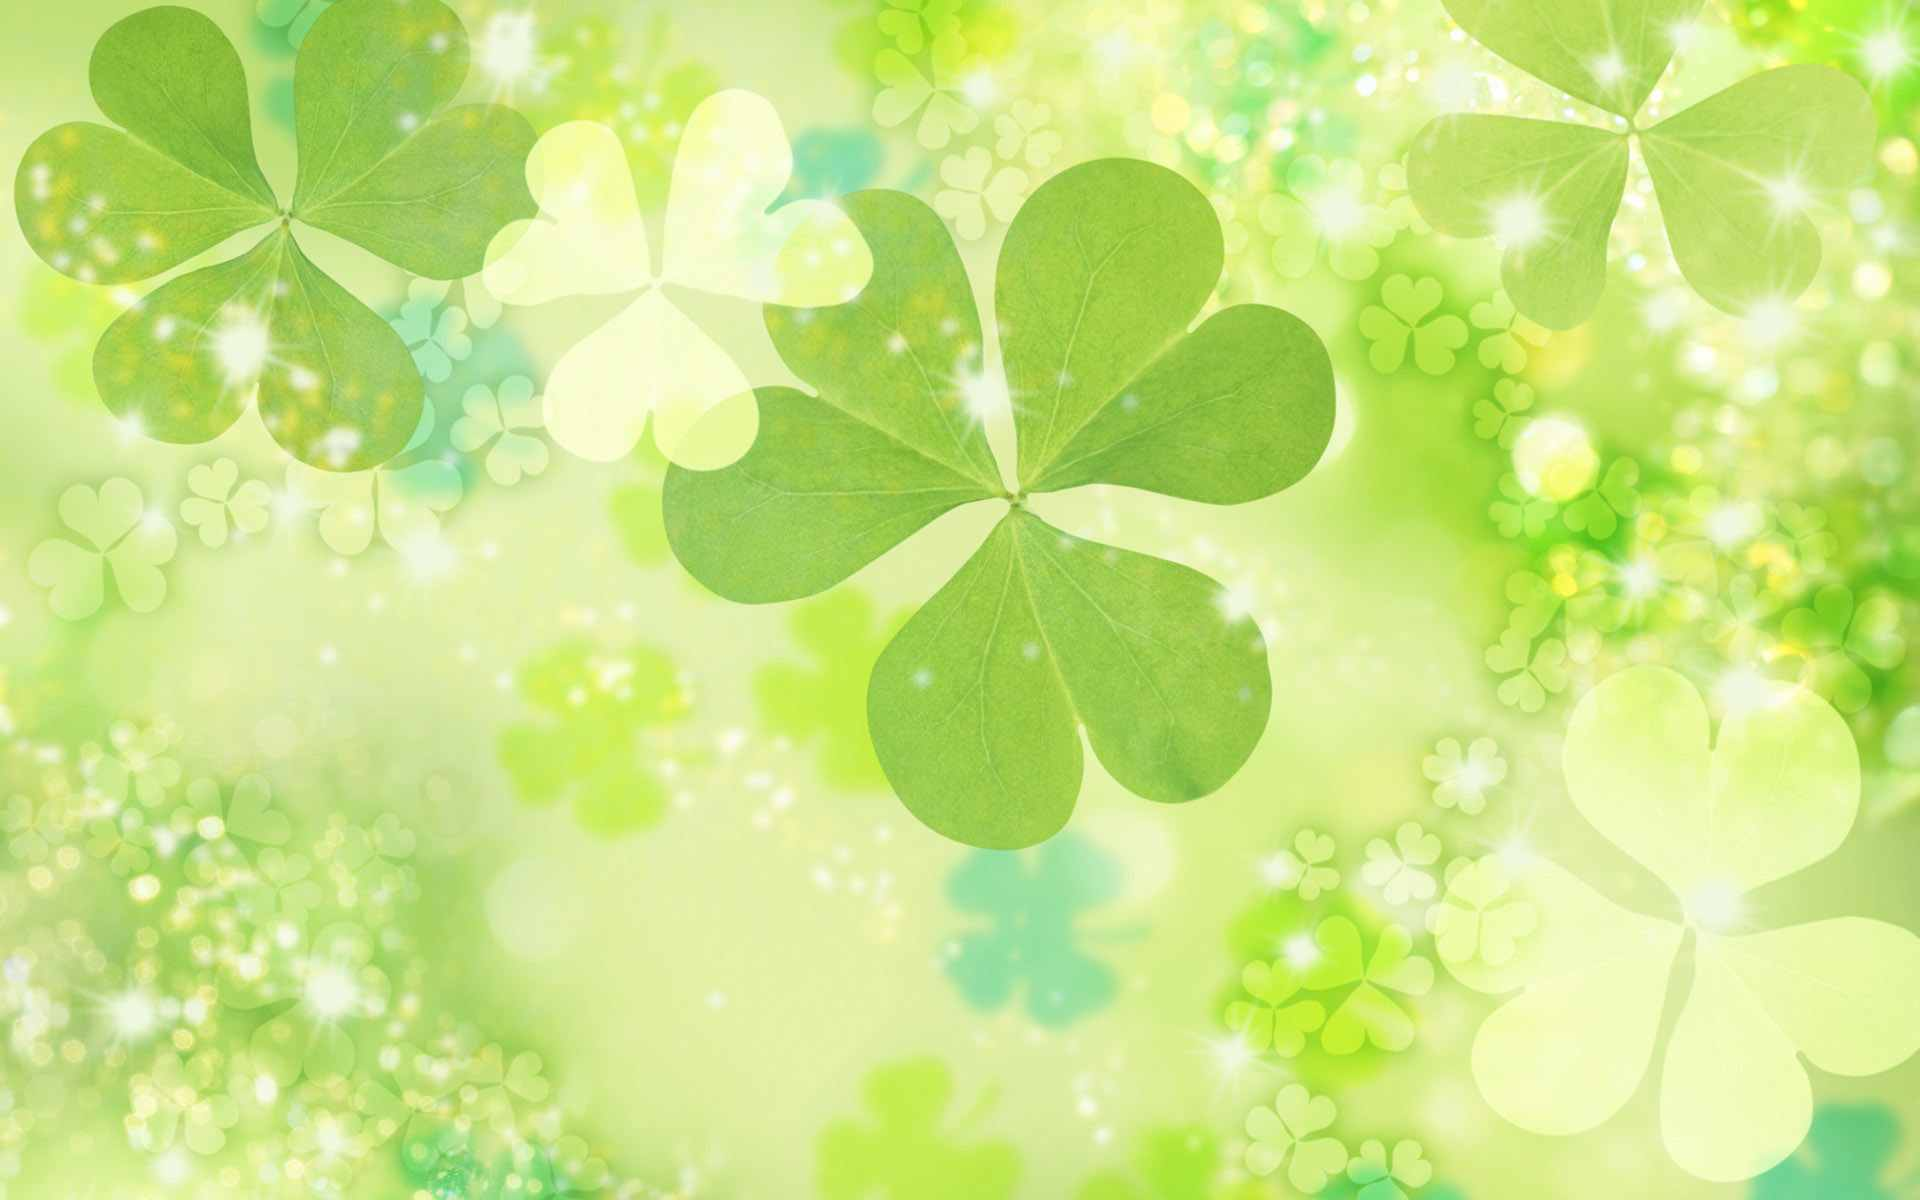 St Patrick Day Wallpapers Panda 1920x1200PX ~ Wallpapers Free